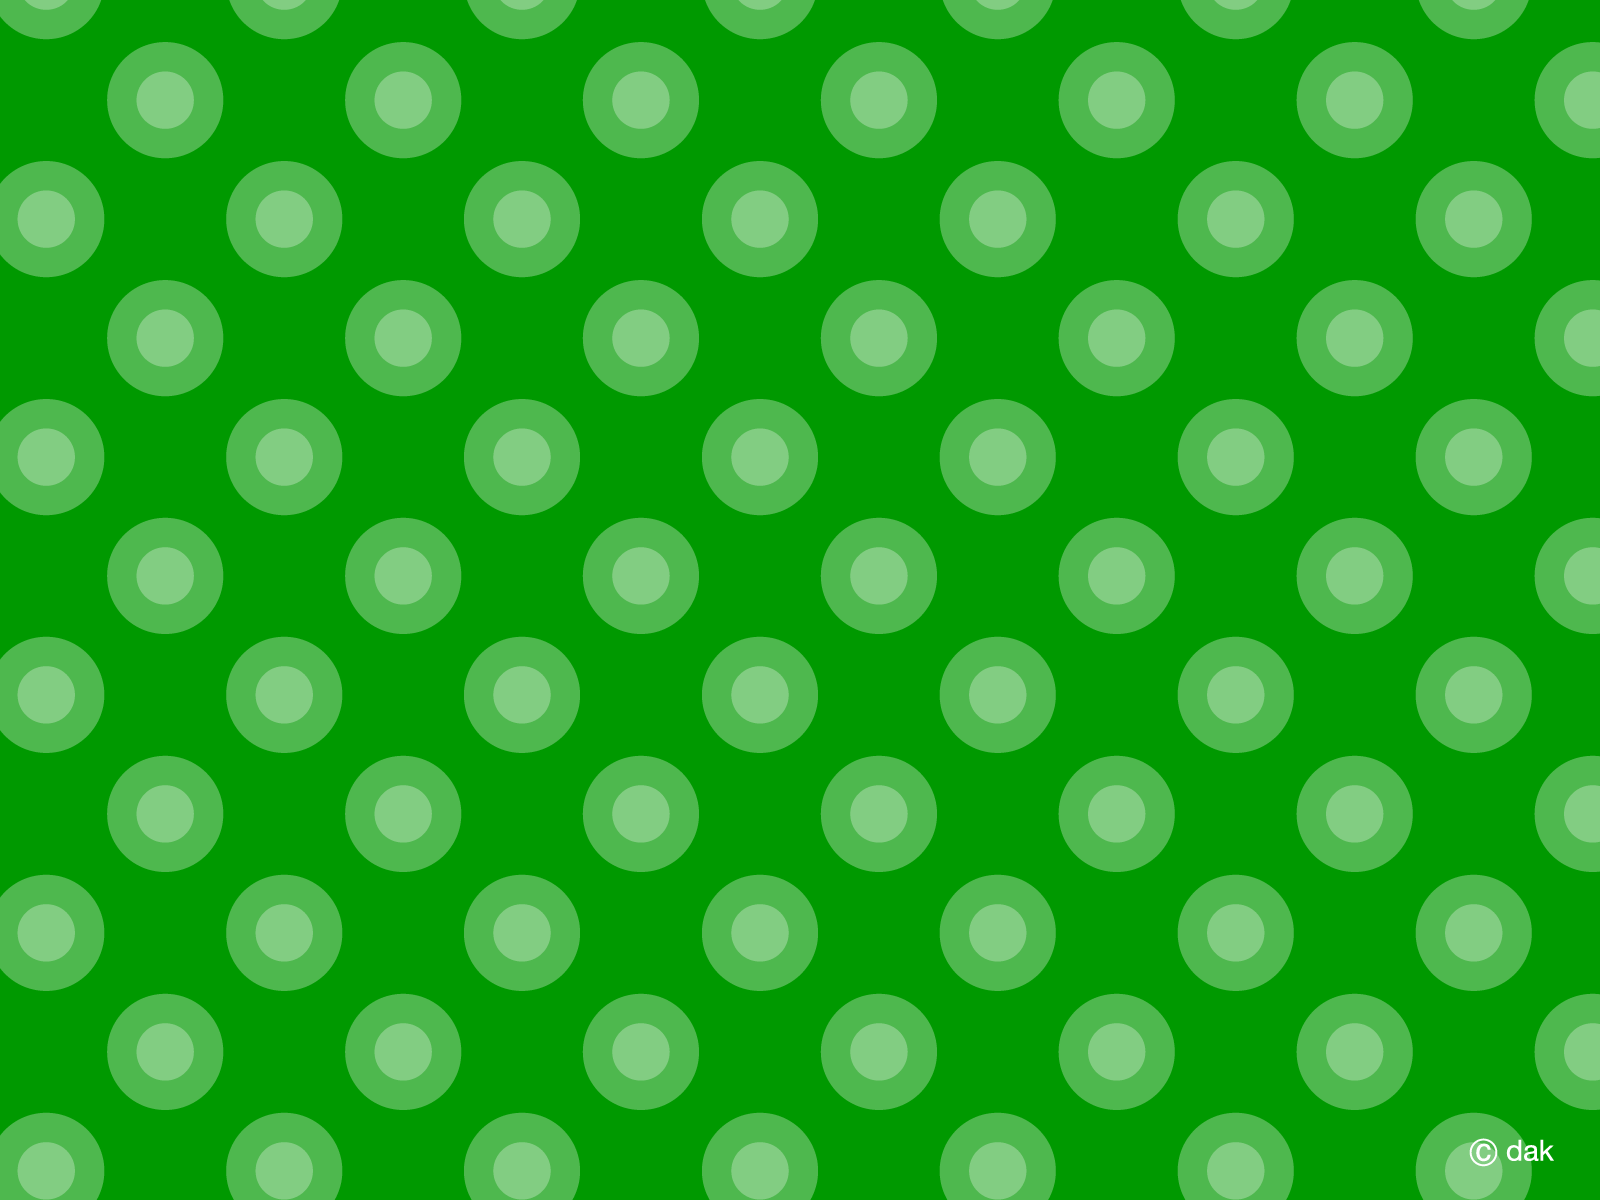 green polka dot wallpapers images pictures becuo